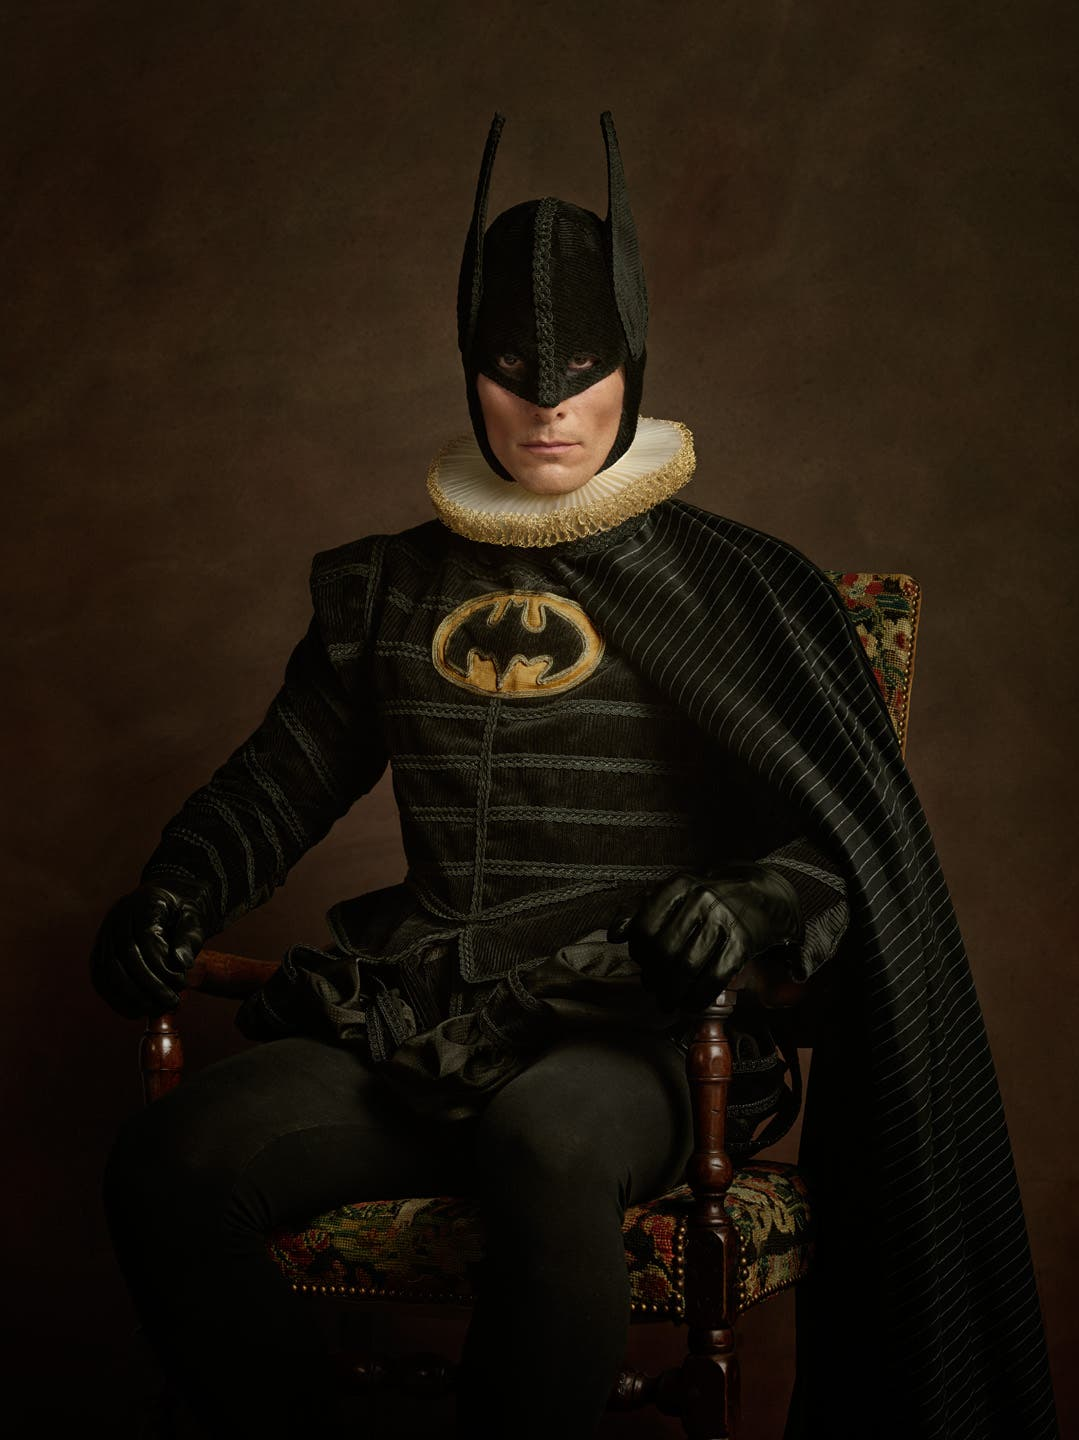 Super Flemish Puts Superheroes in the 16th Century